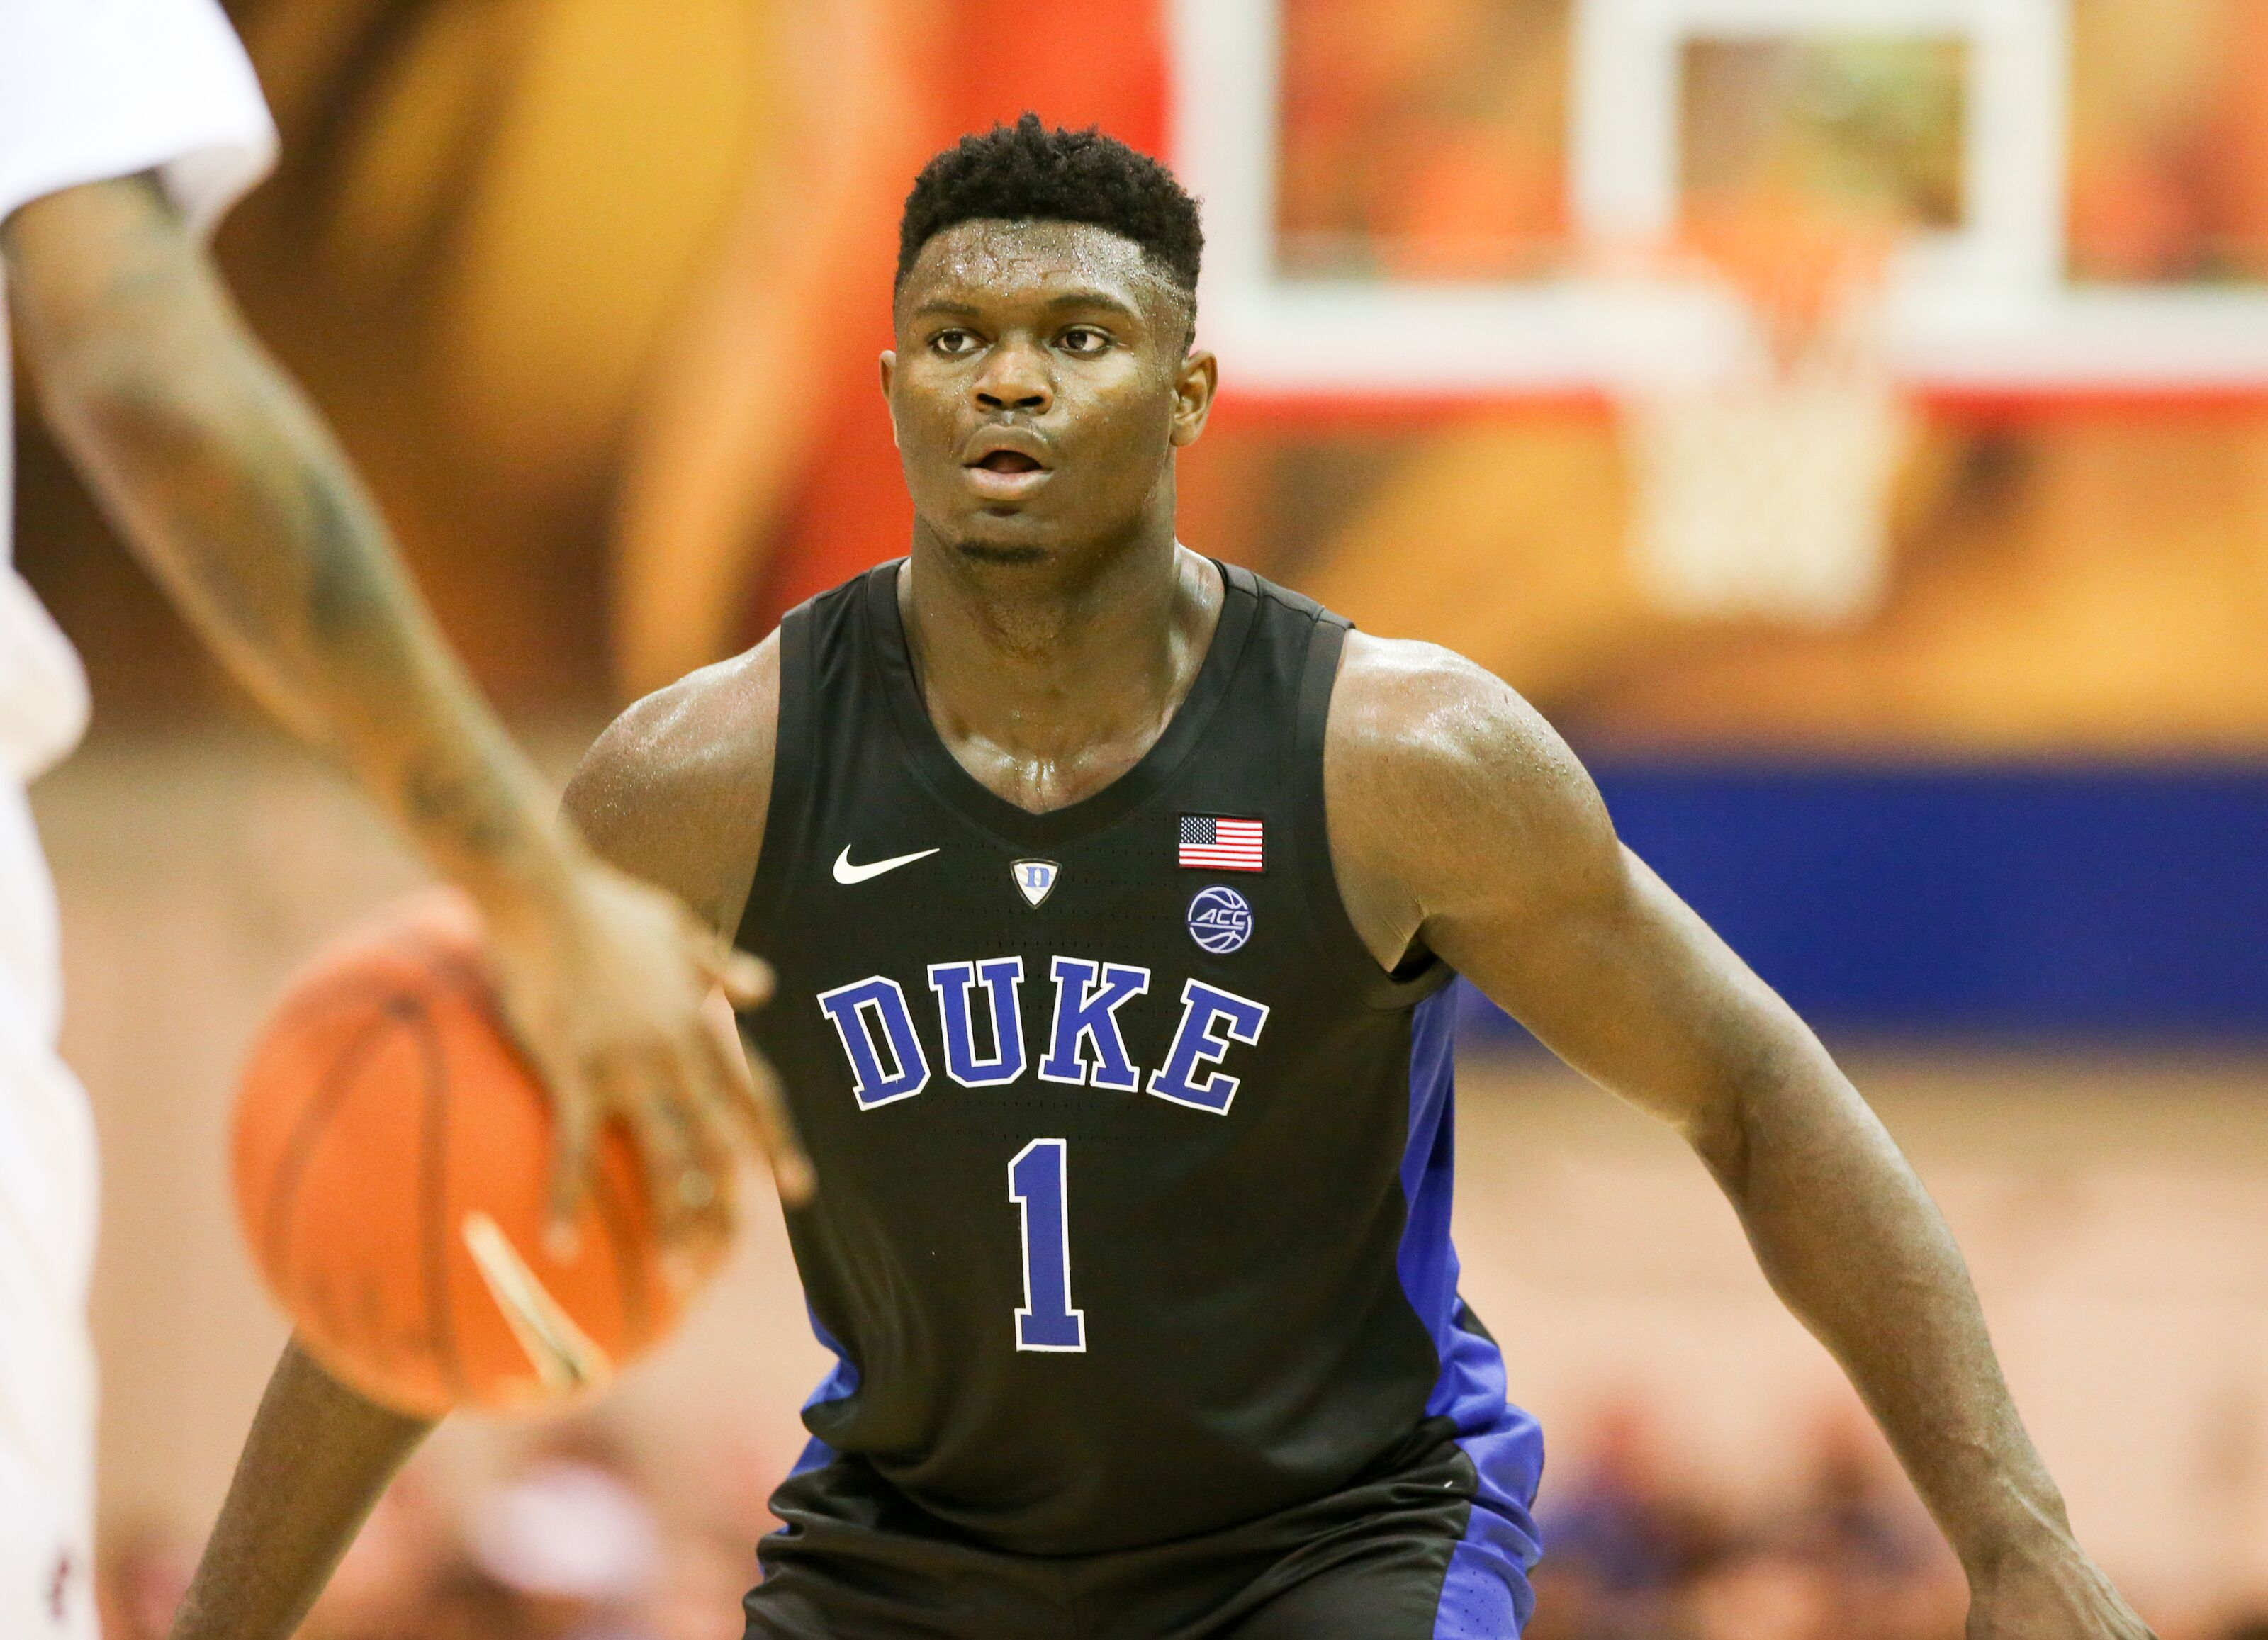 NBA Draft 2019: Zion Williamson shouldn't be the unanimous first overall pick